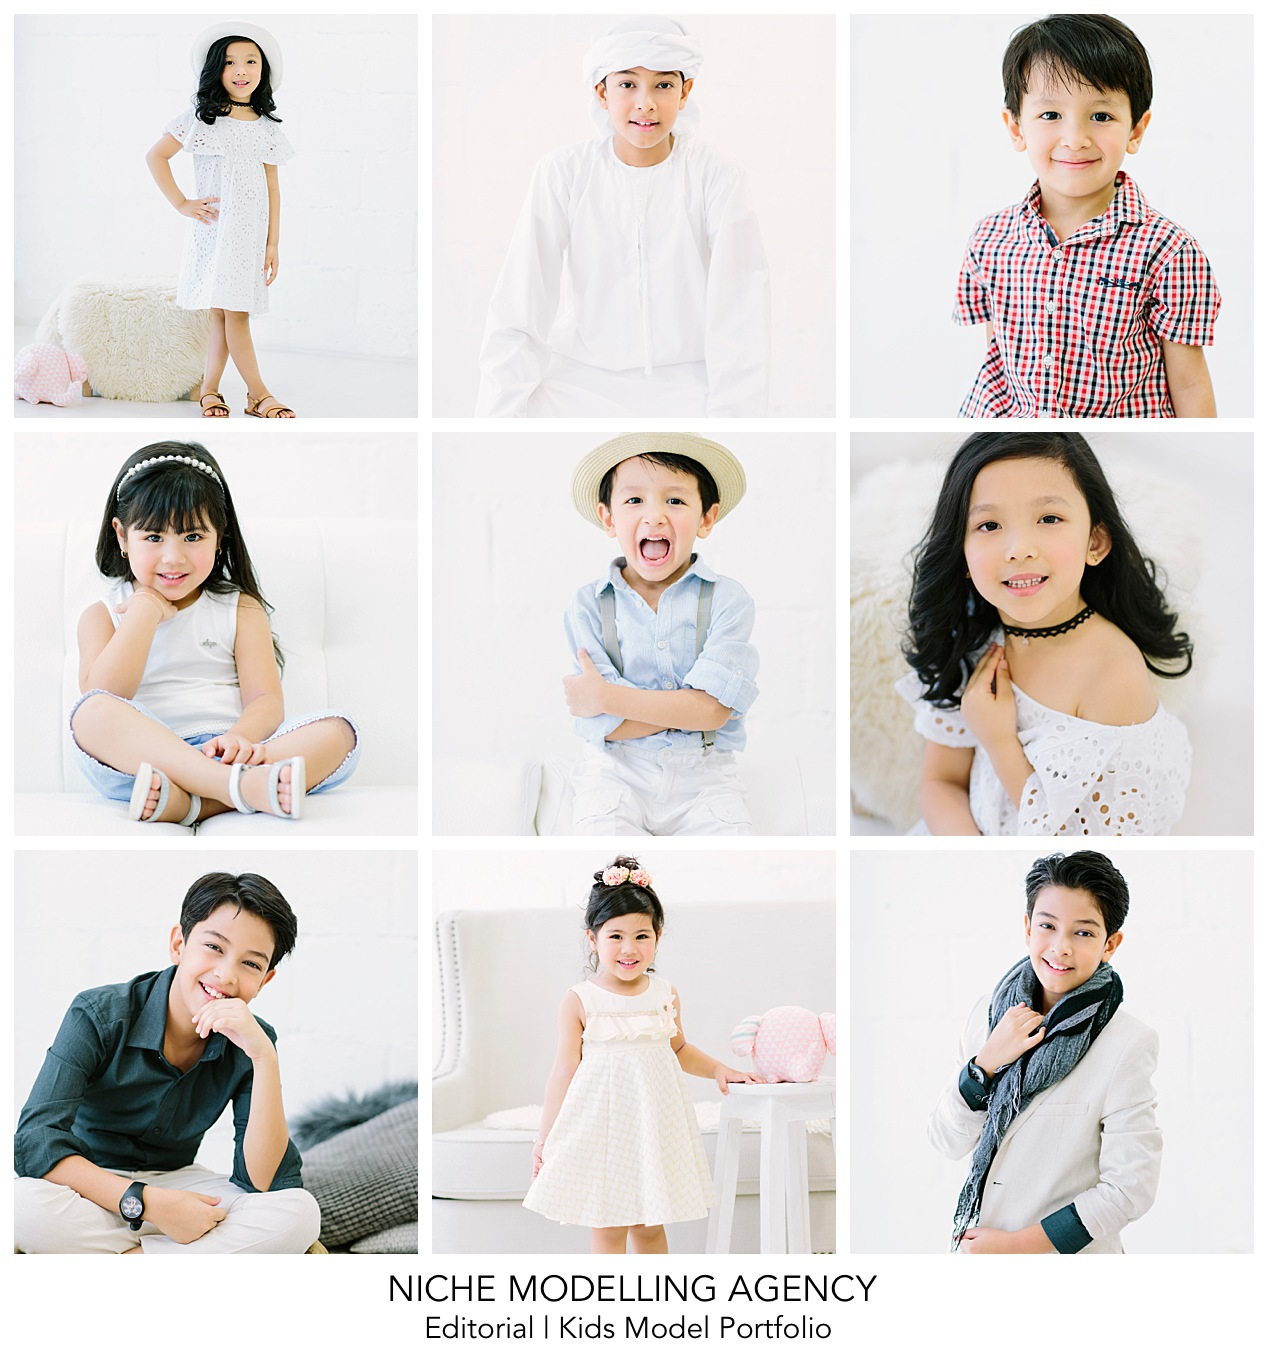 - Give your kids a fun summer to remember and sign them up for a model portfolio experience shoot with Enchanté Studios in partnership with Niche Modelling Agency.1 hour portfolio shoot | 3-outfits (white shirt and jeans | casual wear | fashion wear) | receive all images from session with light editingJune 15th, 22nd and 29th only - limited sessions available 750AED - special summer promo exclusive to Niche Modelling Agency.